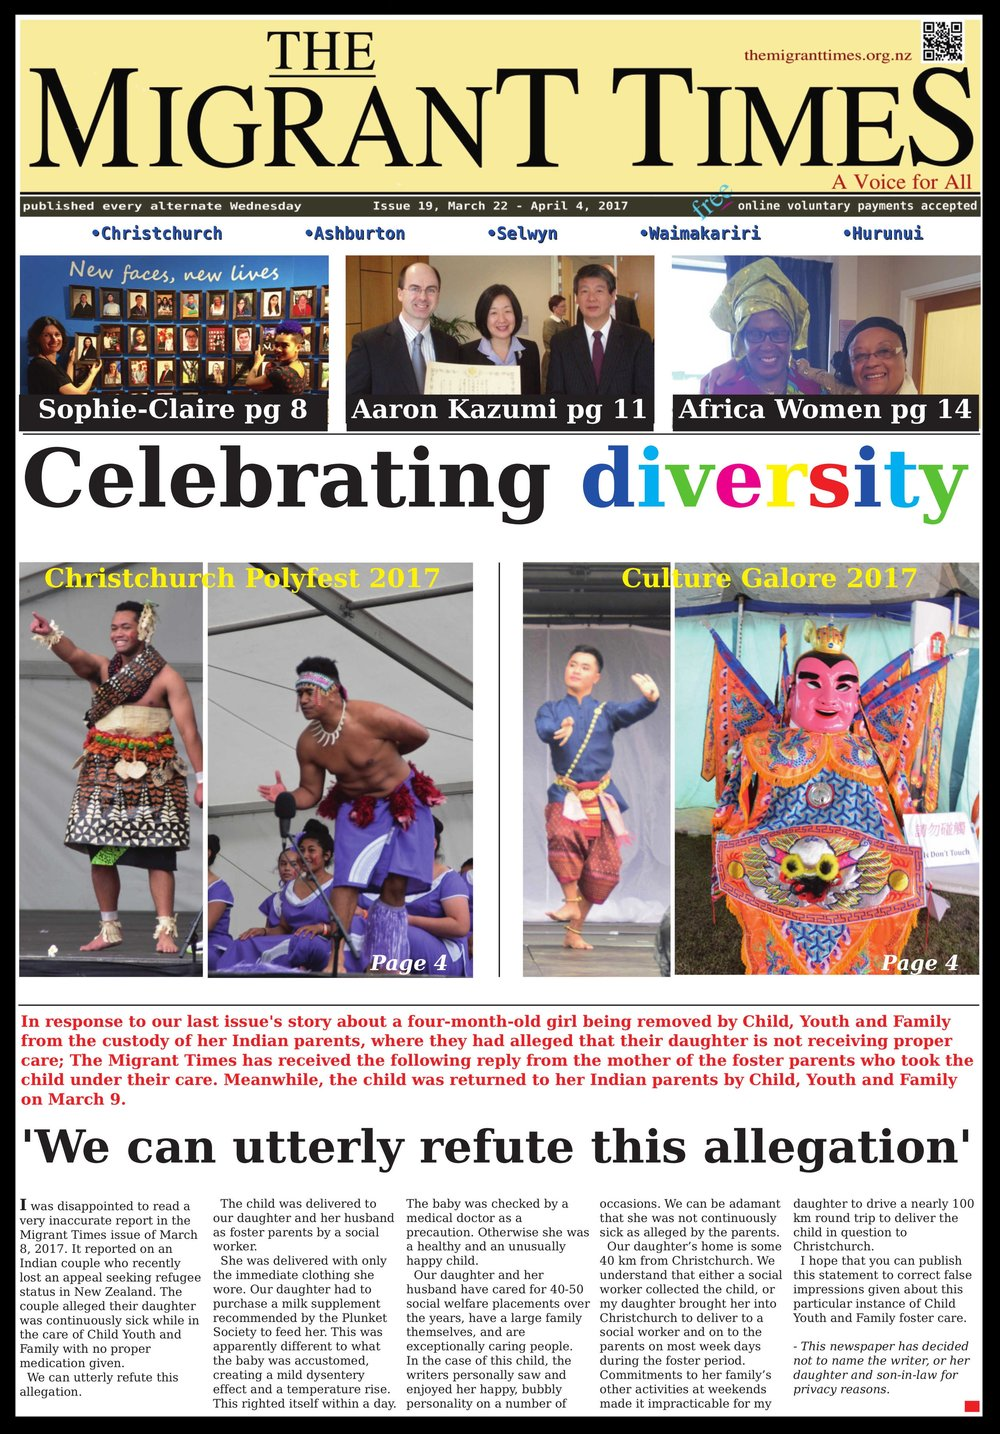 Issue 19, March 22 - April 4, 2017